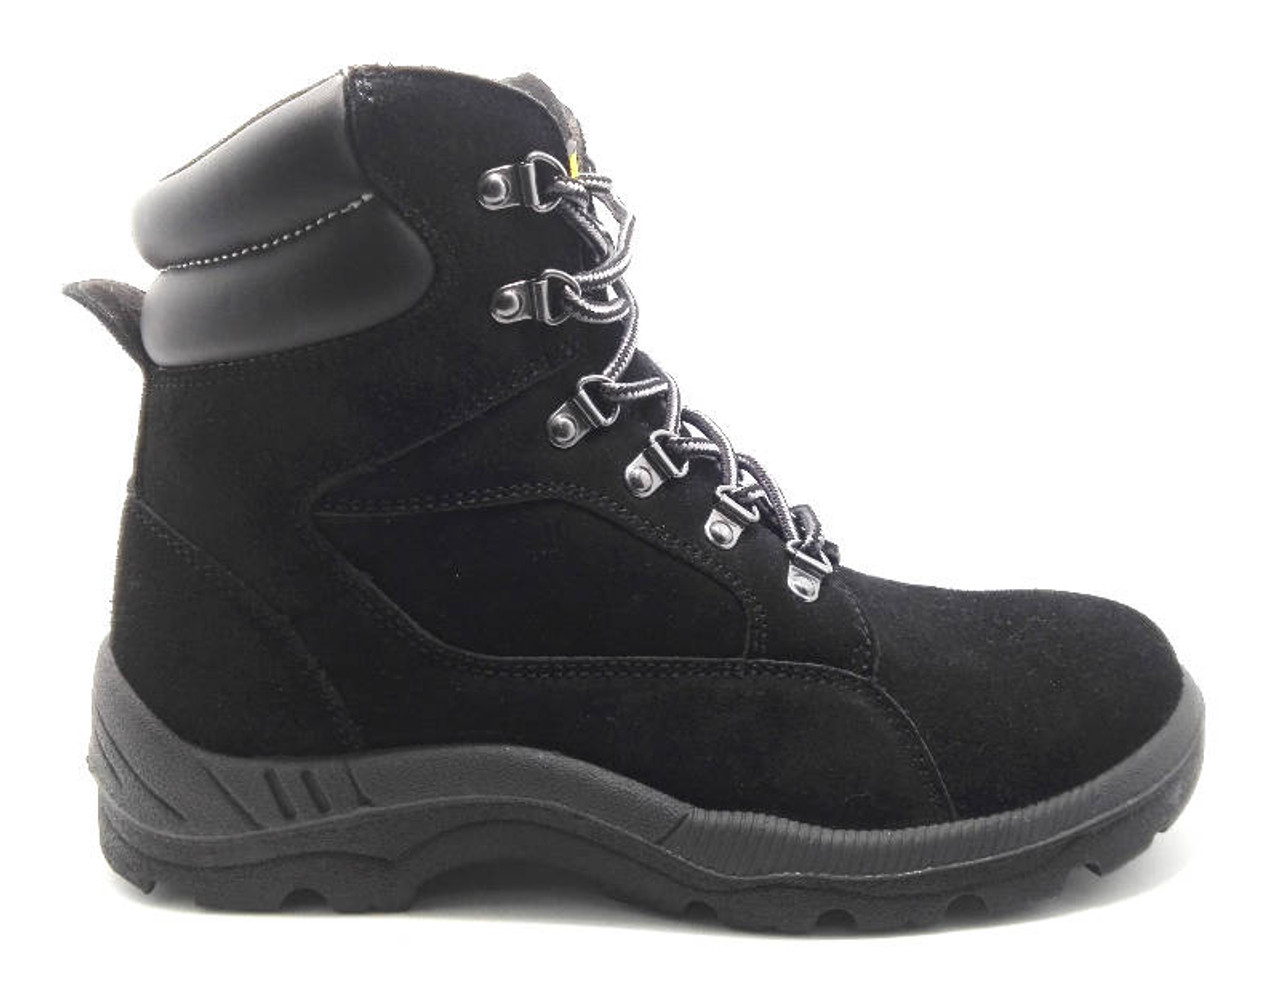 eb634d329f Diadora Asolo Steel Toe Cap Safety Work Boots in Black Leather ...